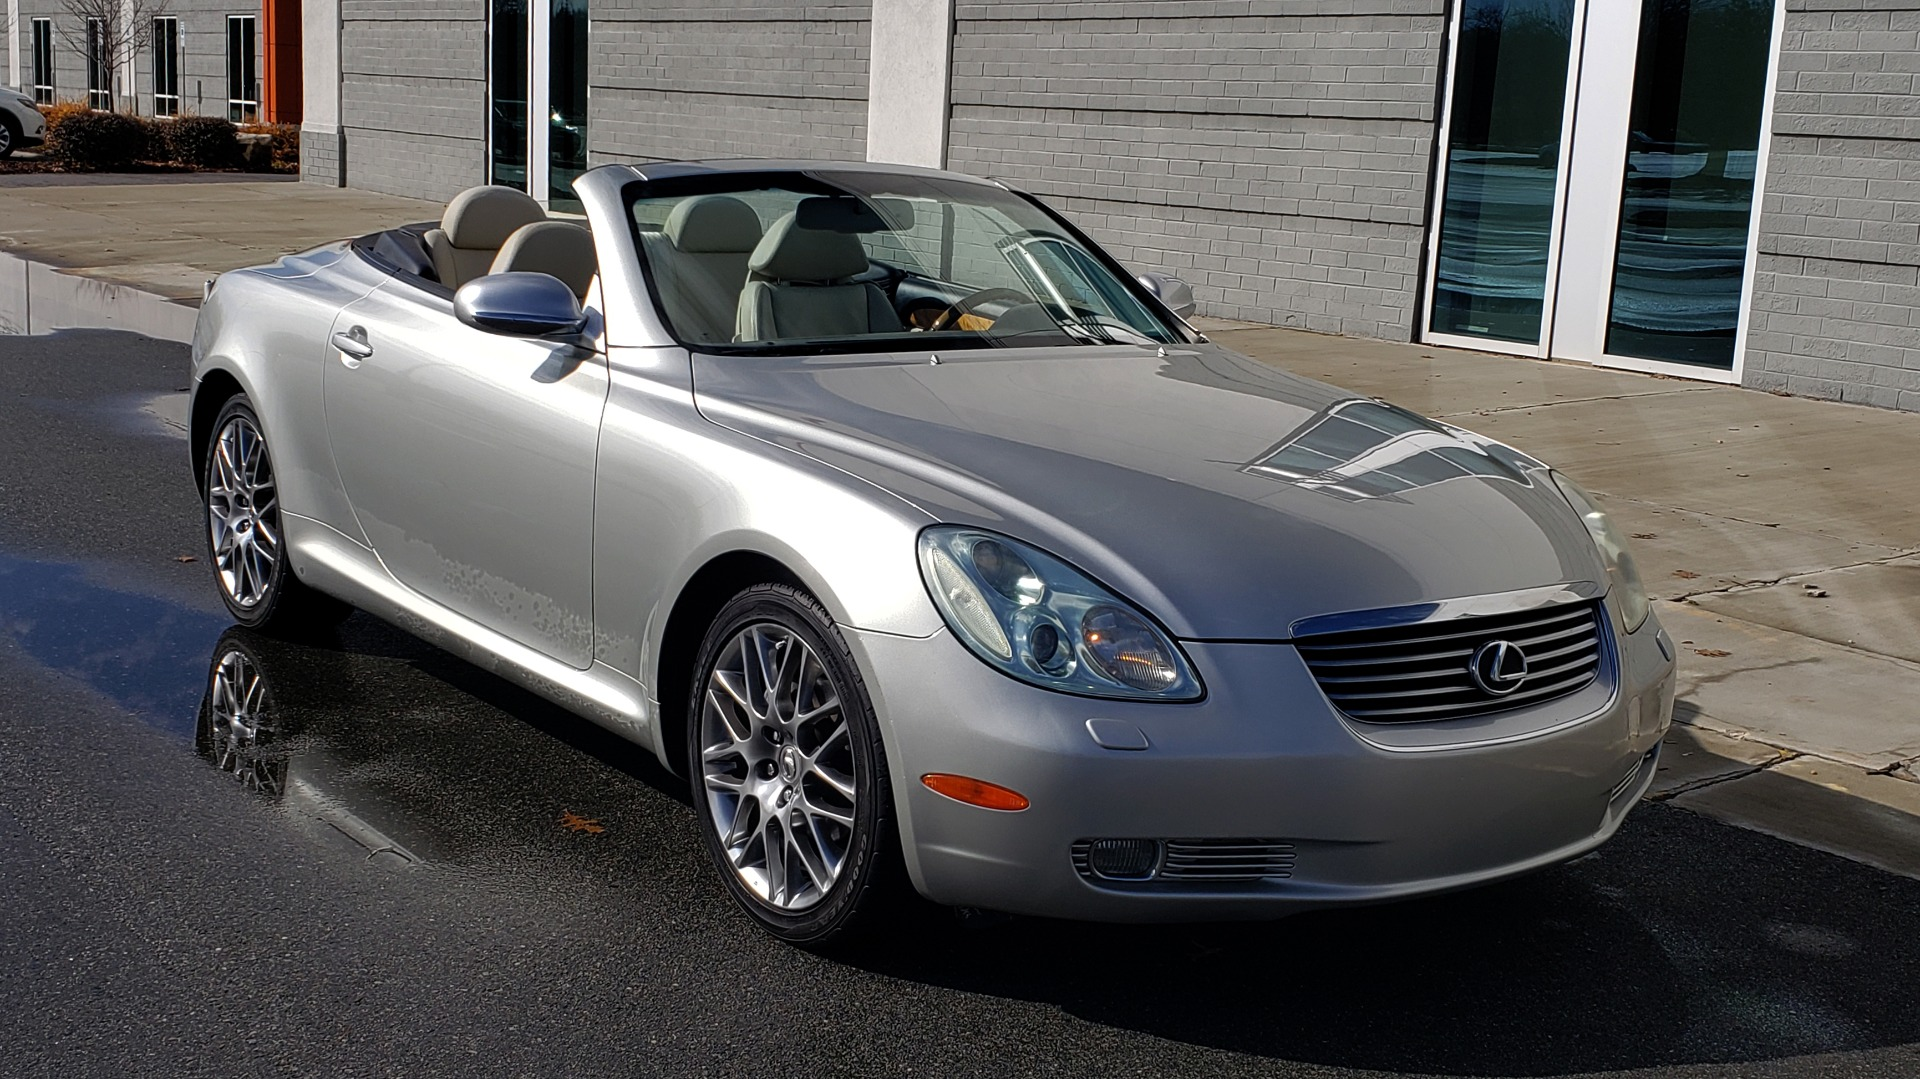 Used 2004 Lexus SC 430 CONVERTIBLE / 4.3L V8 / 5-SPD AUTO / MARK LEVINSON / 18IN WHEELS for sale $14,995 at Formula Imports in Charlotte NC 28227 18